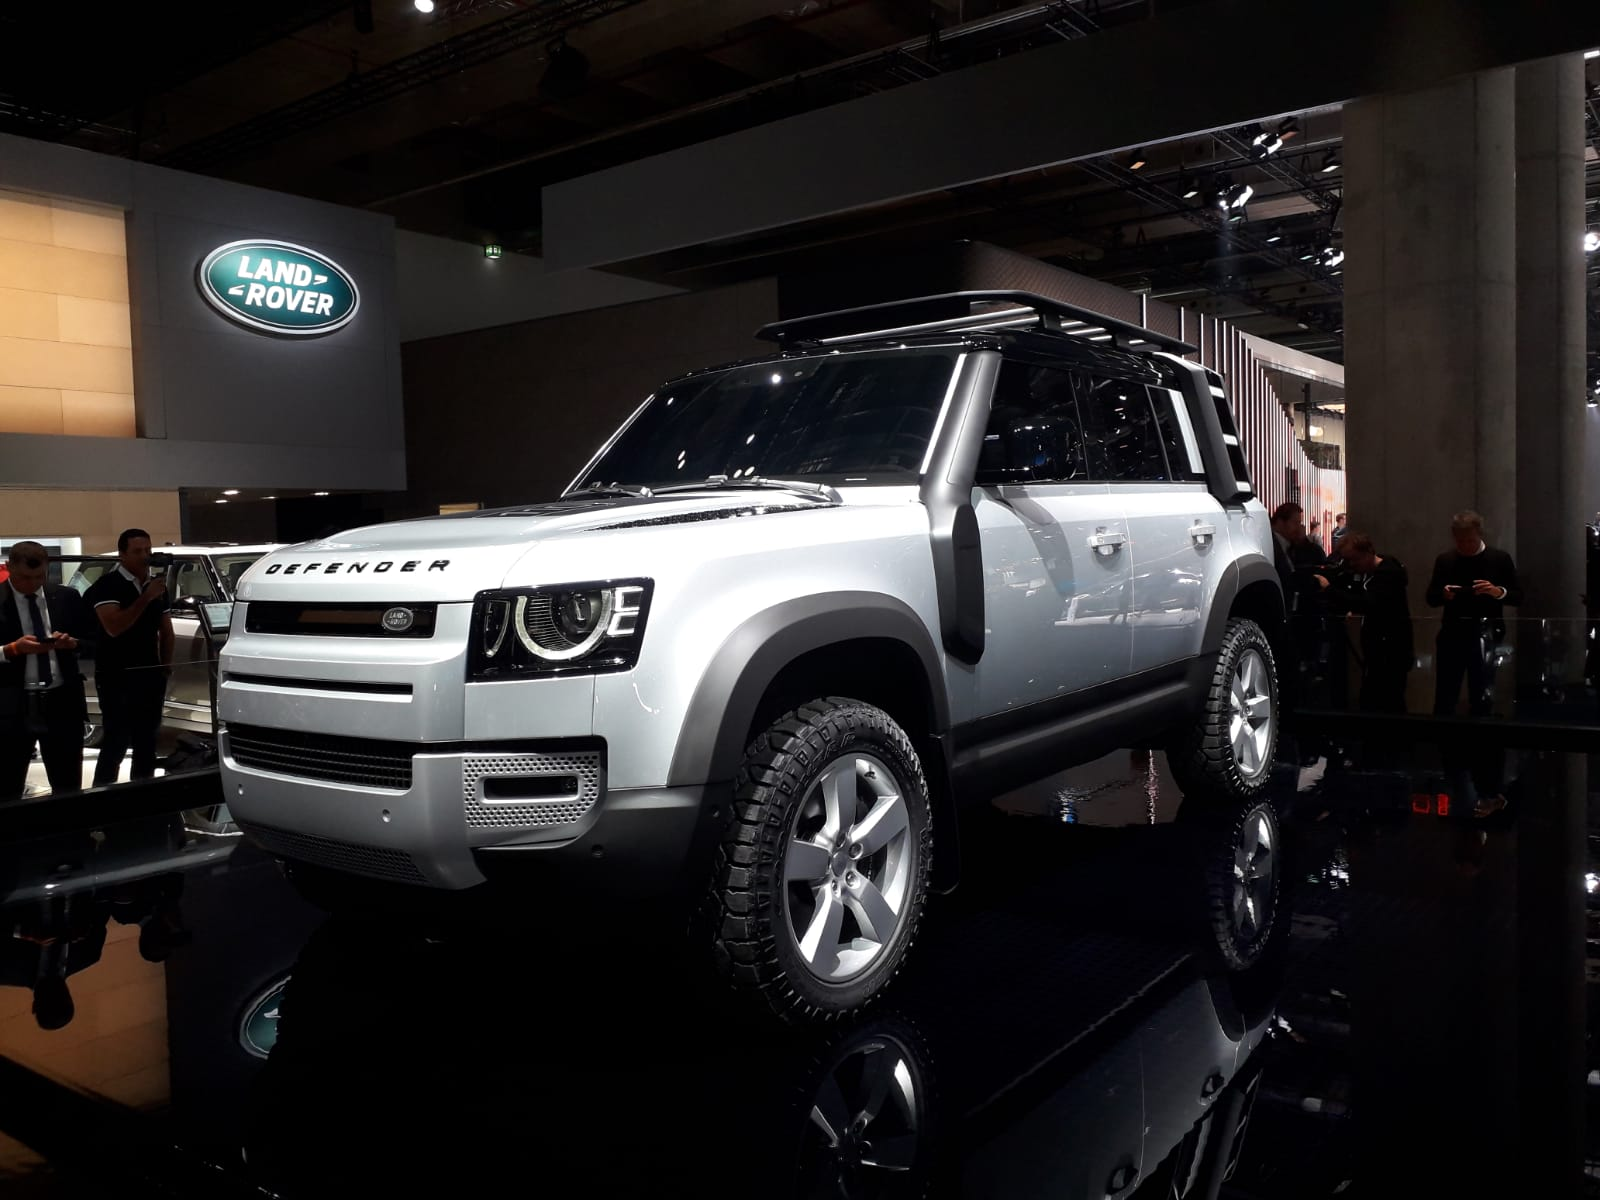 design-nuovo-land-rover-defender-salone-francoforte-2019